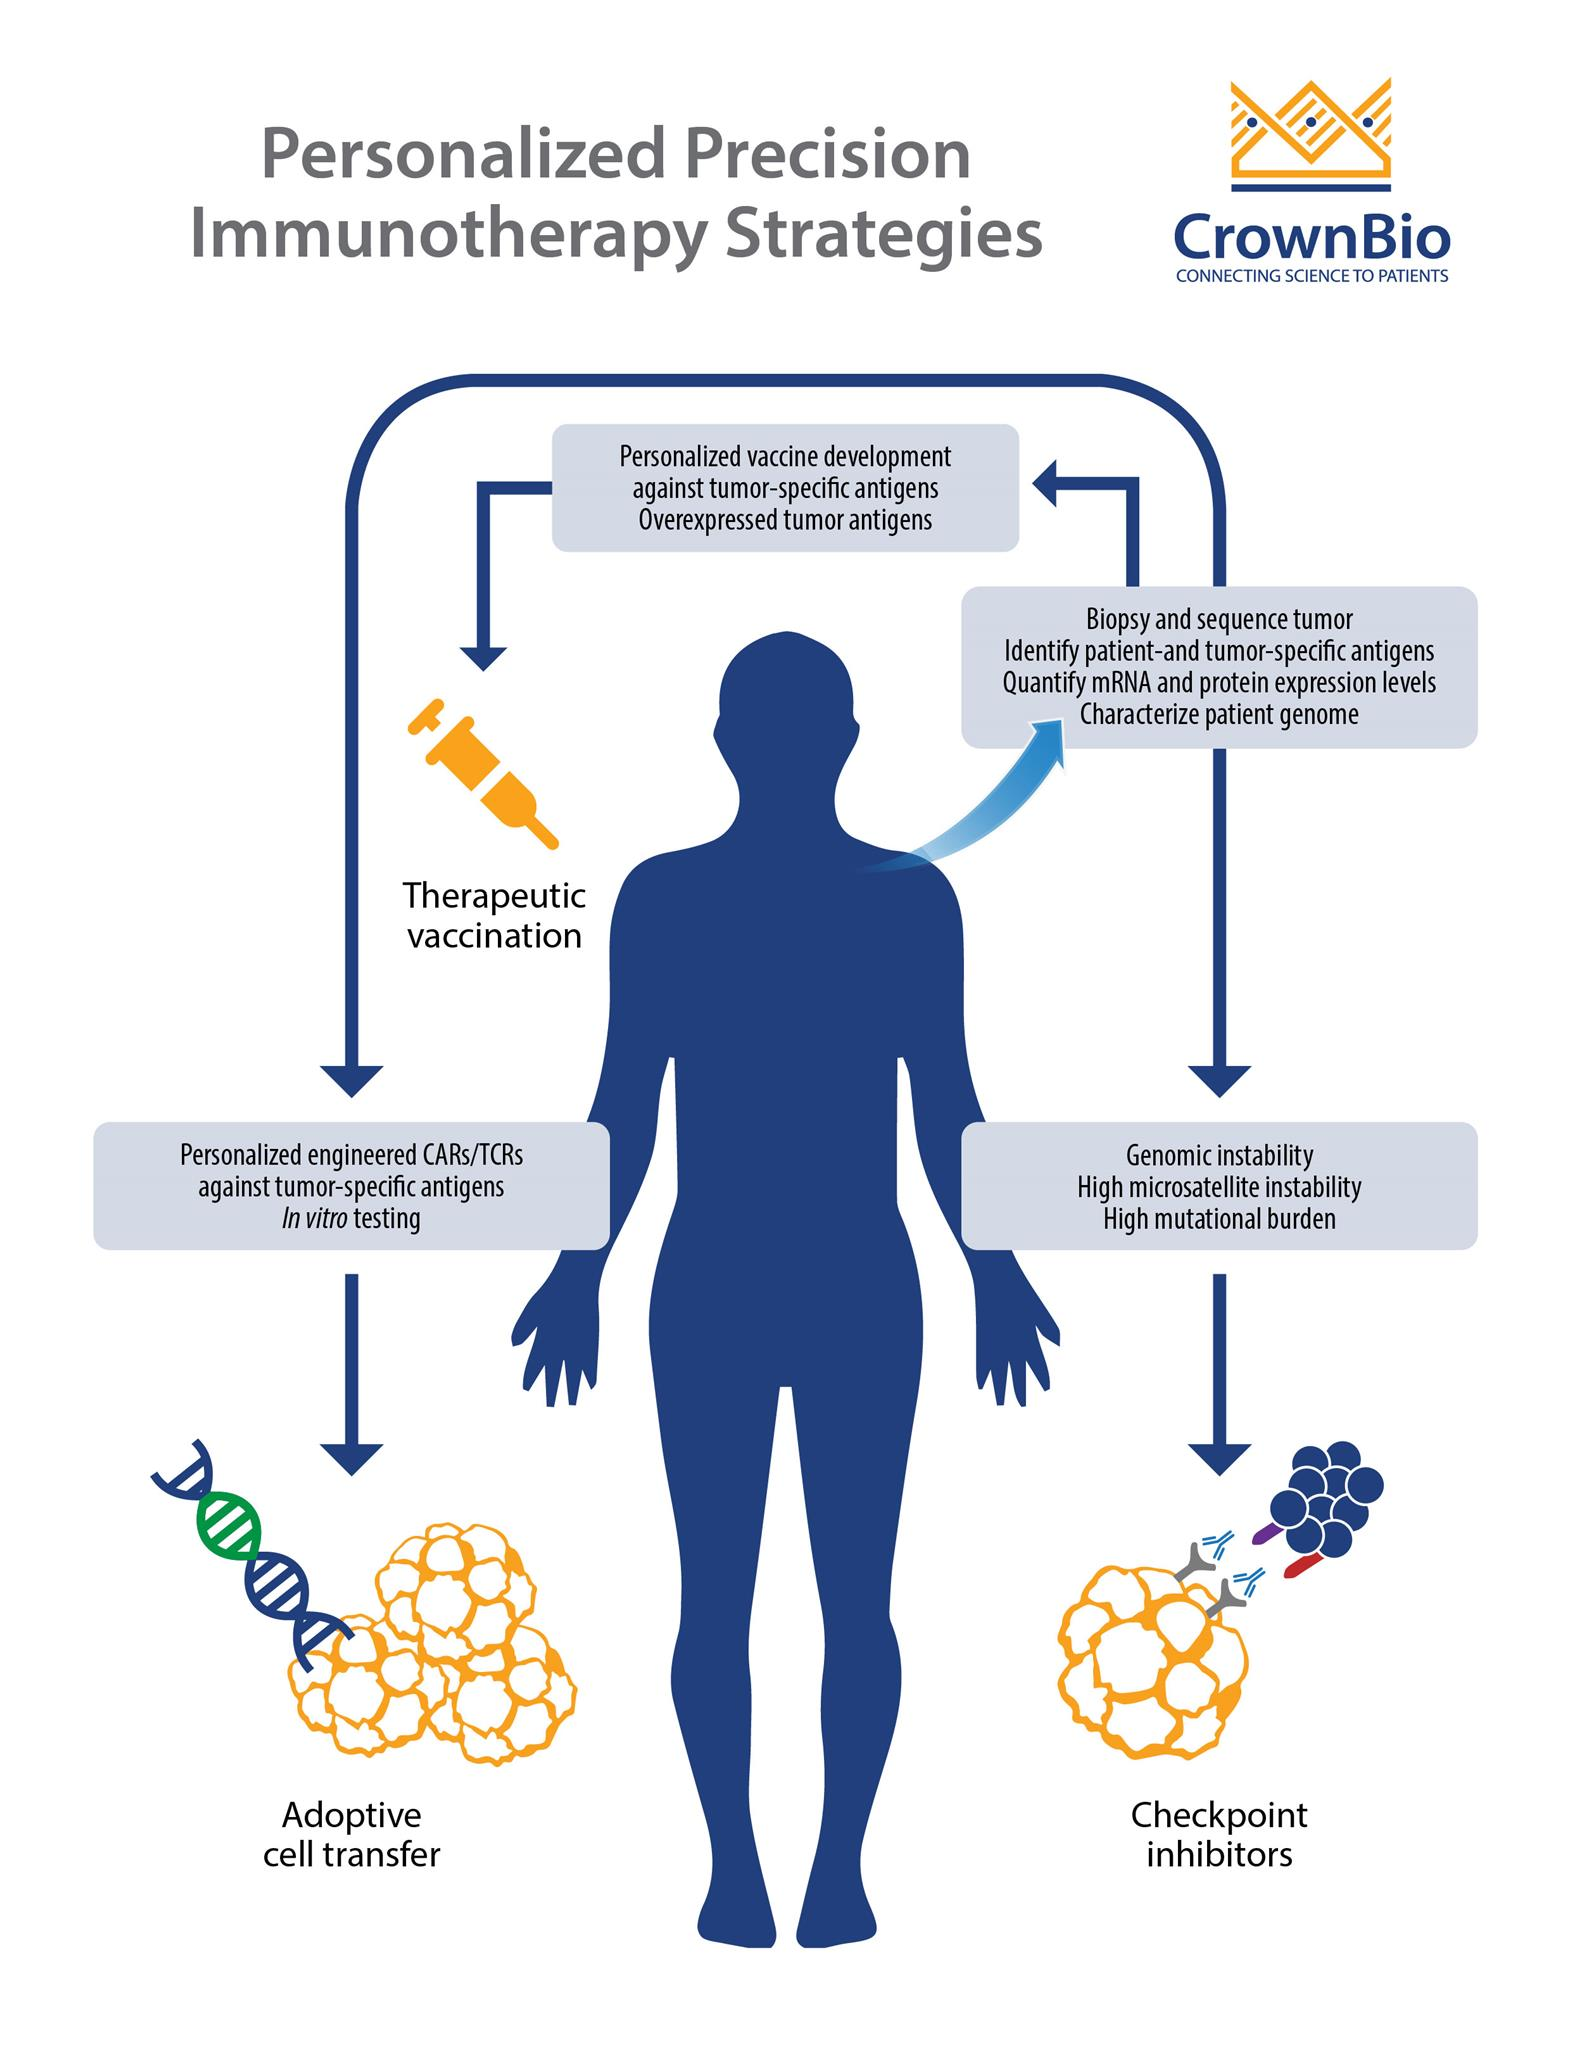 personalized precision immunotherapy strategies, therapeutic vaccination, car-t cell therapy, immune checkpoint inhibitors, adoptive cell transfer